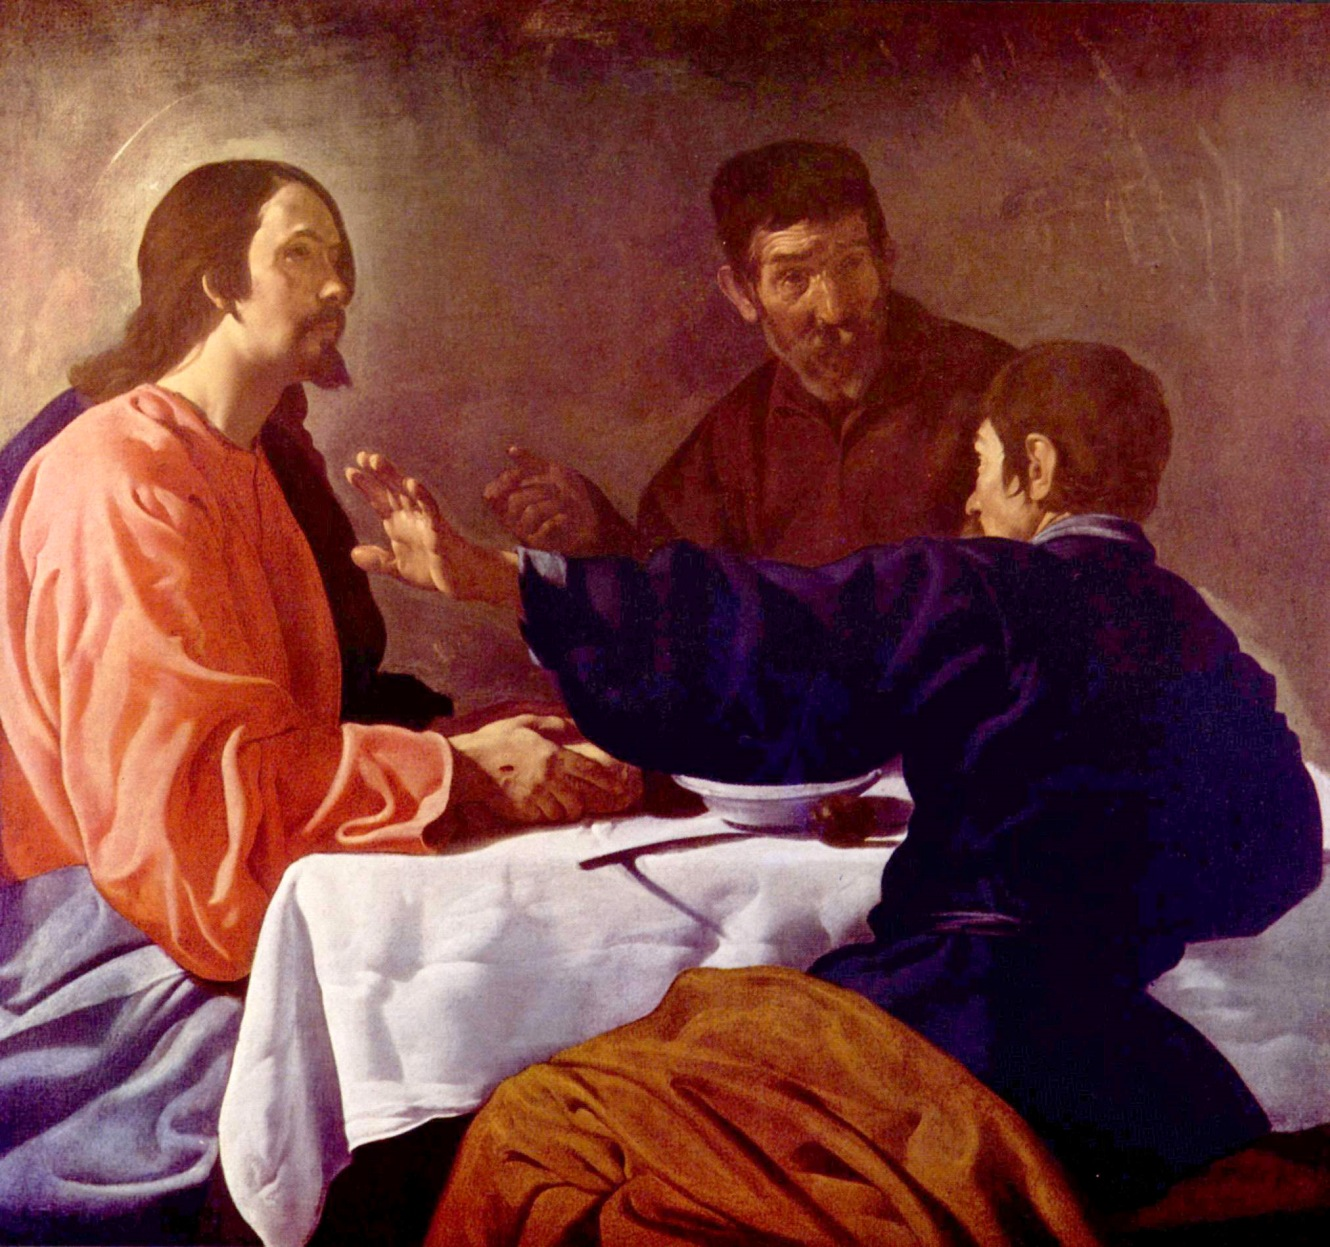 the christ of velazquez poetry visits art essay Whereas most printed poetry journals report a circulation of a few thousand at most, an online poem can be distributed more widely, for free, with a link in your email newsletter, website, blog, or facebook page.